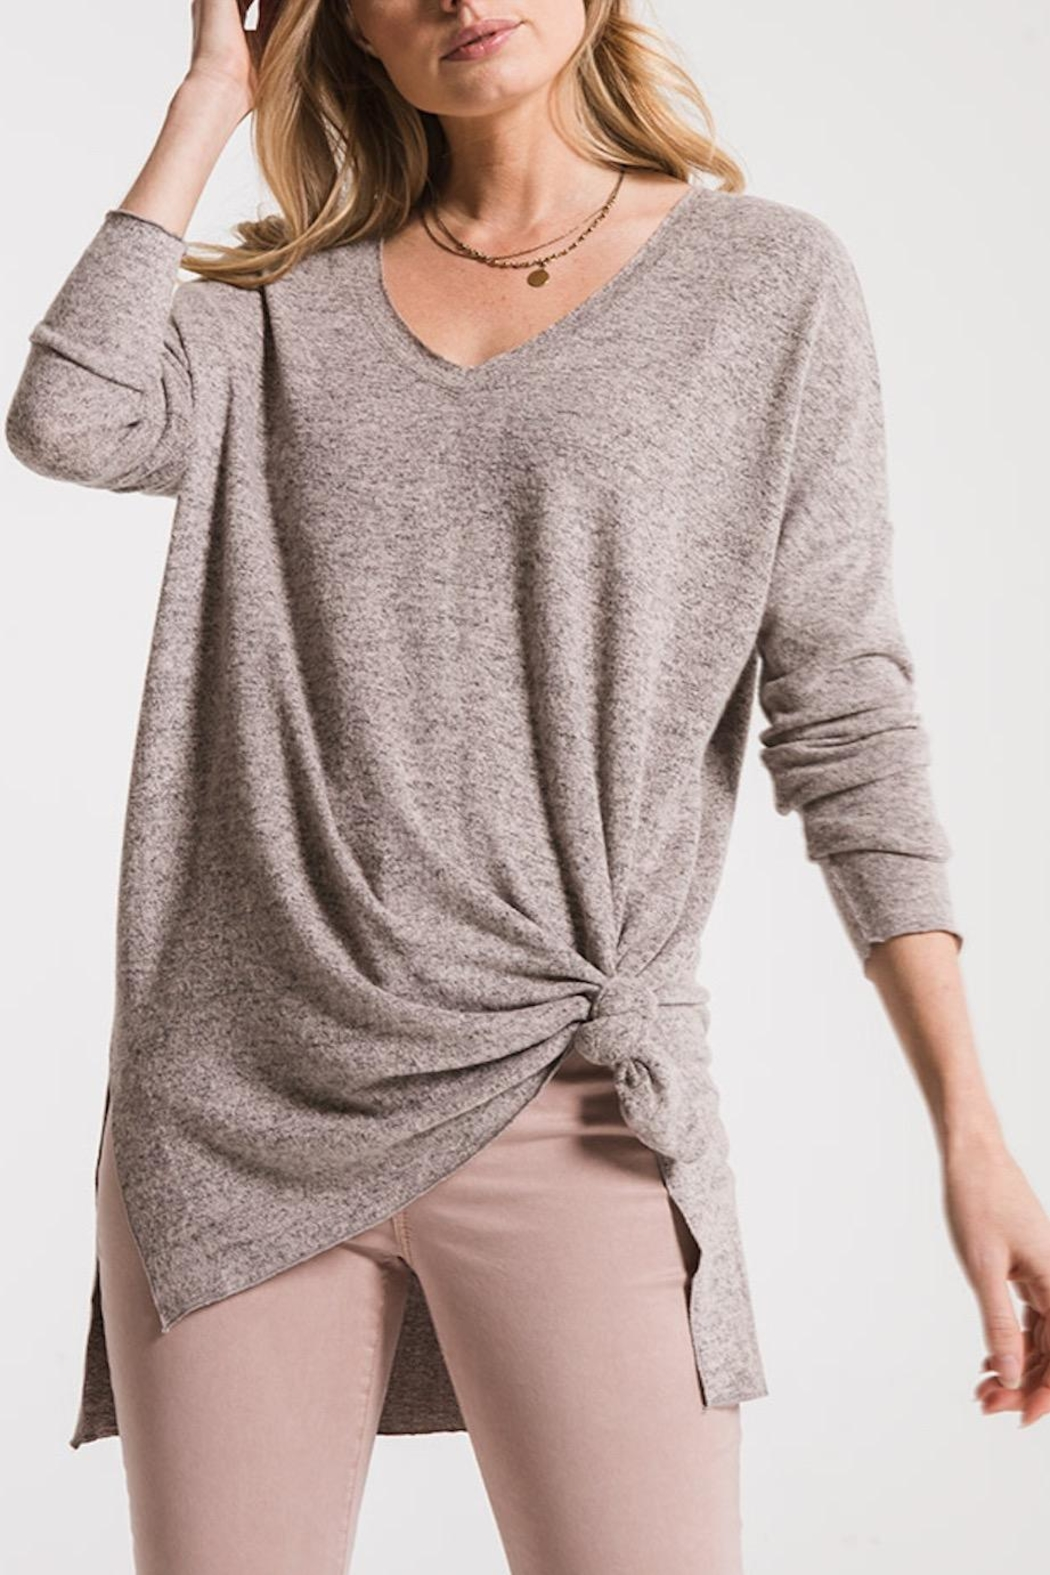 z supply Marled Sweater Tunic - Main Image